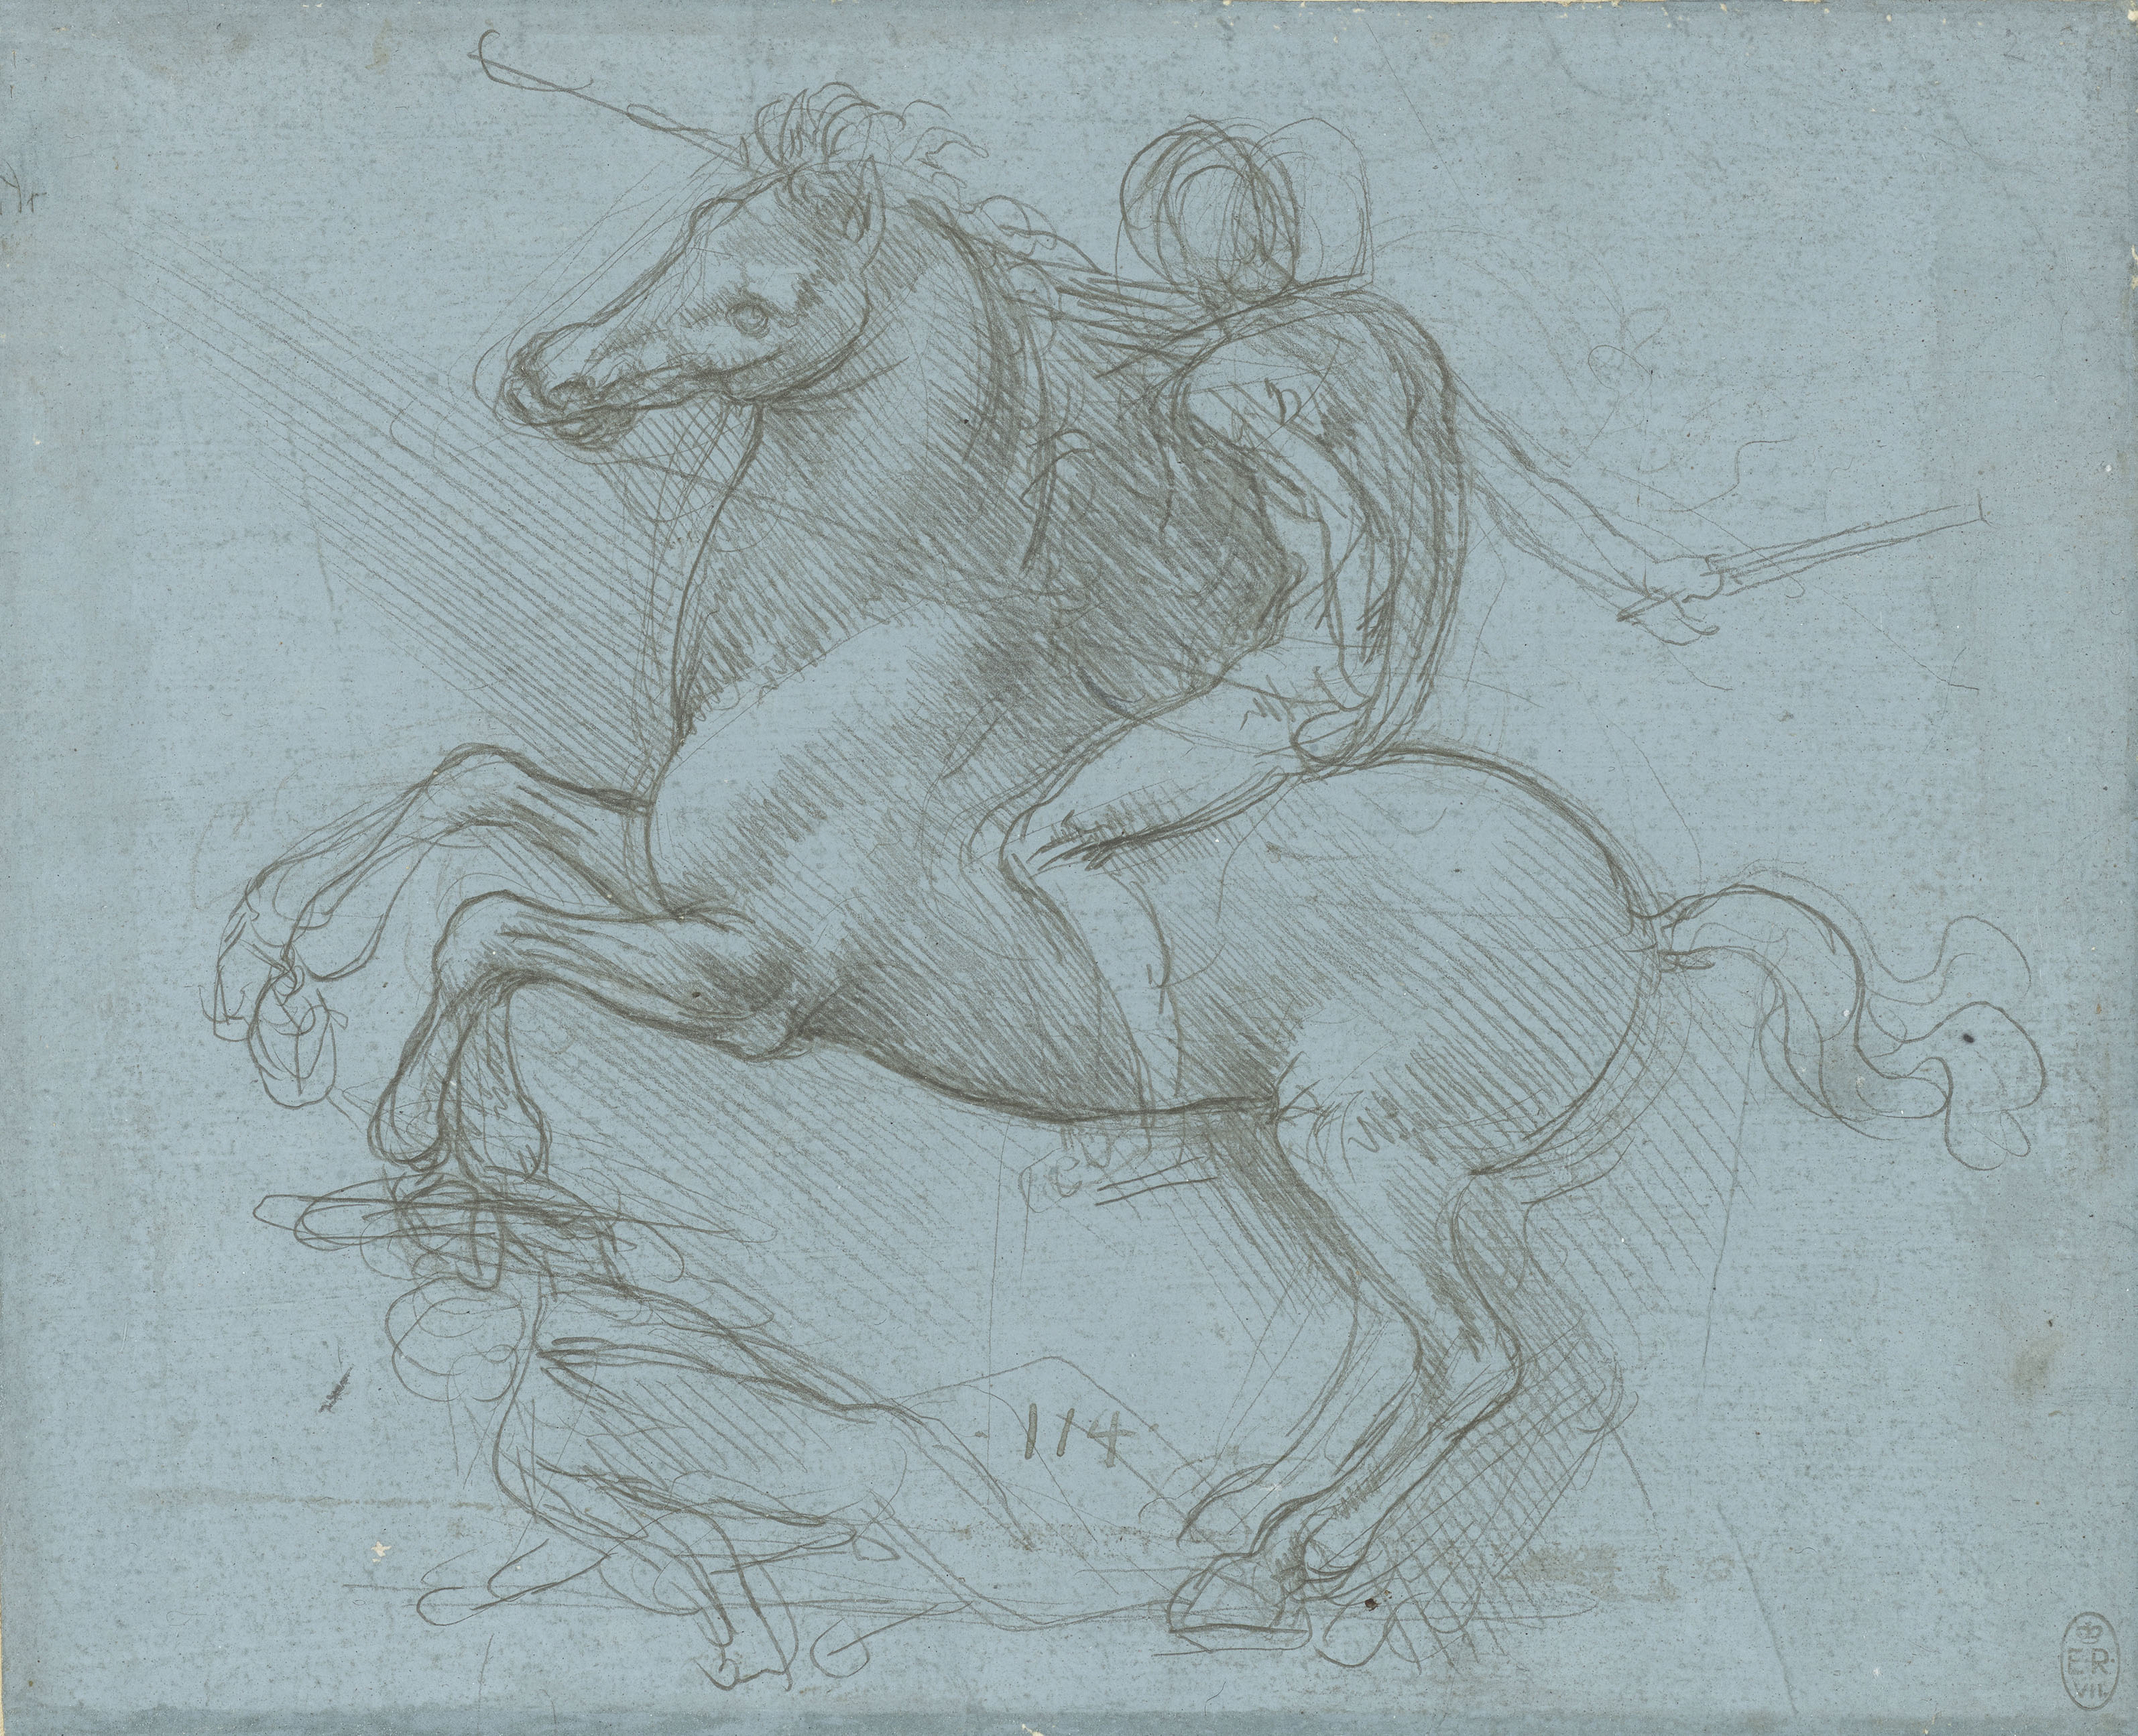 Leonardo da Vinci, A design for an equestrian monument, c.1485-8